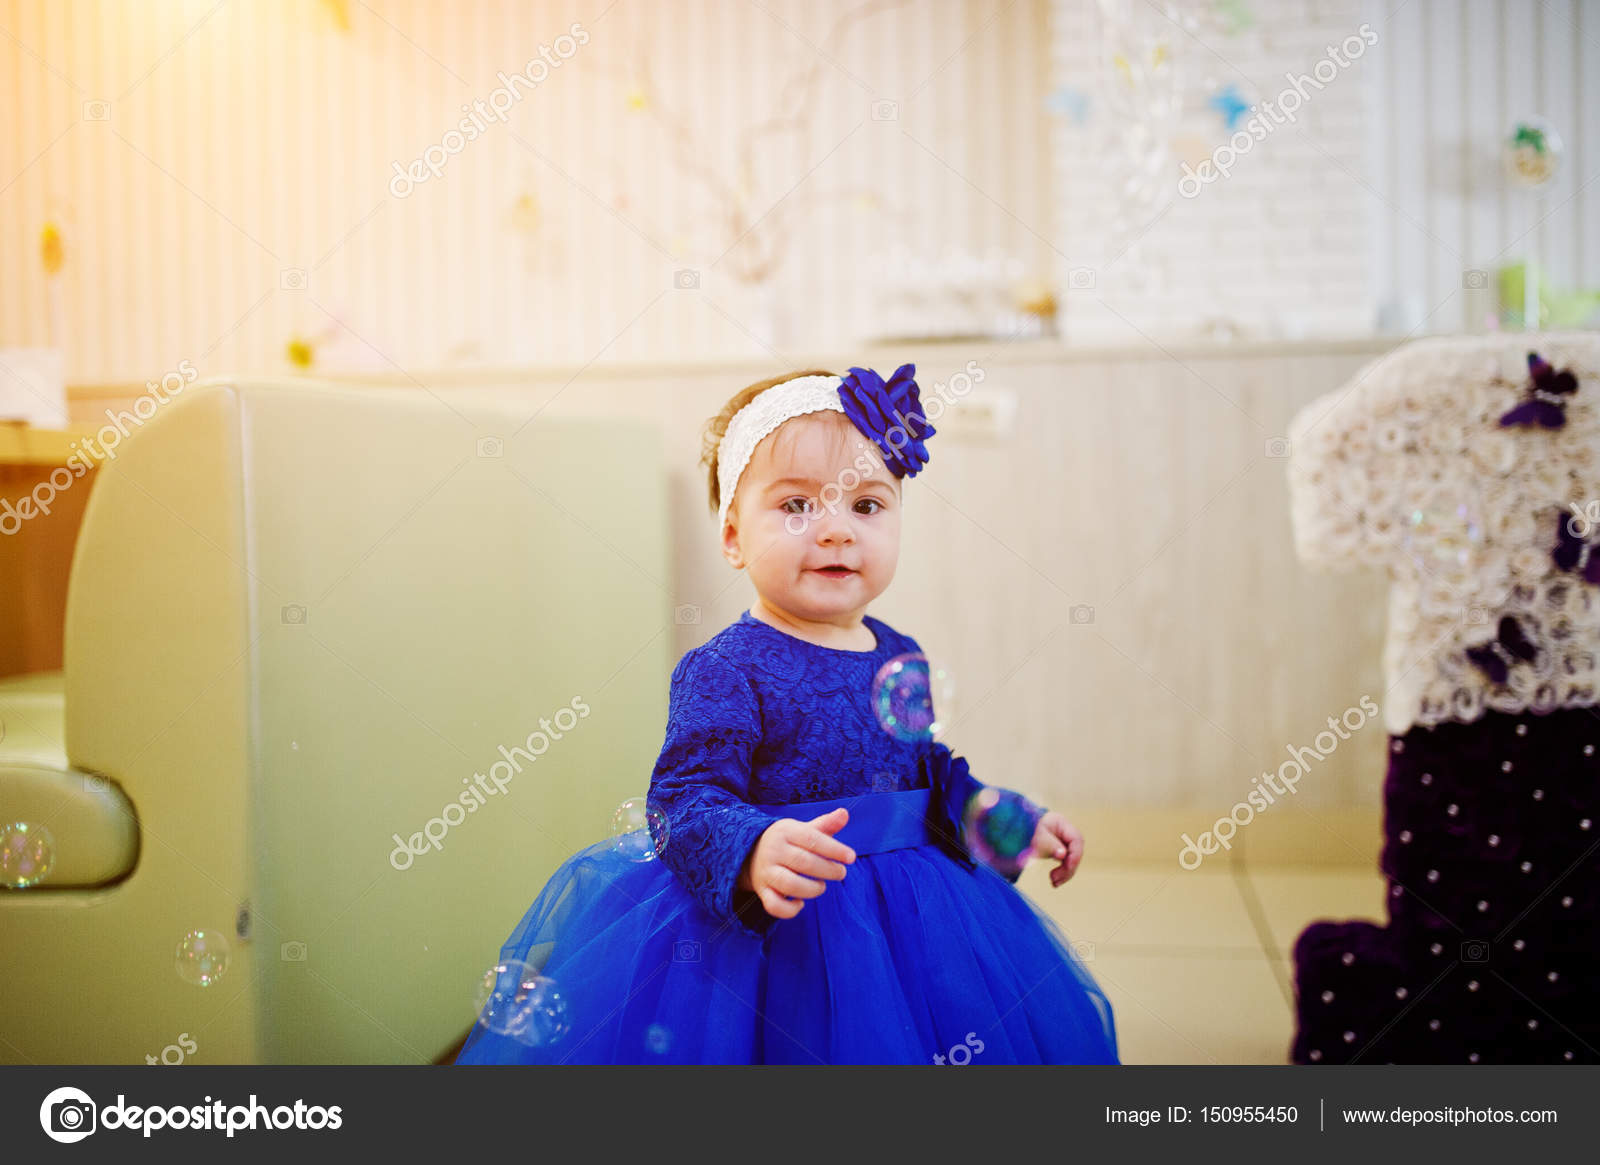 62a069a66 Cute little baby girl at blue dress play with soap bubbles. 1 ye ...